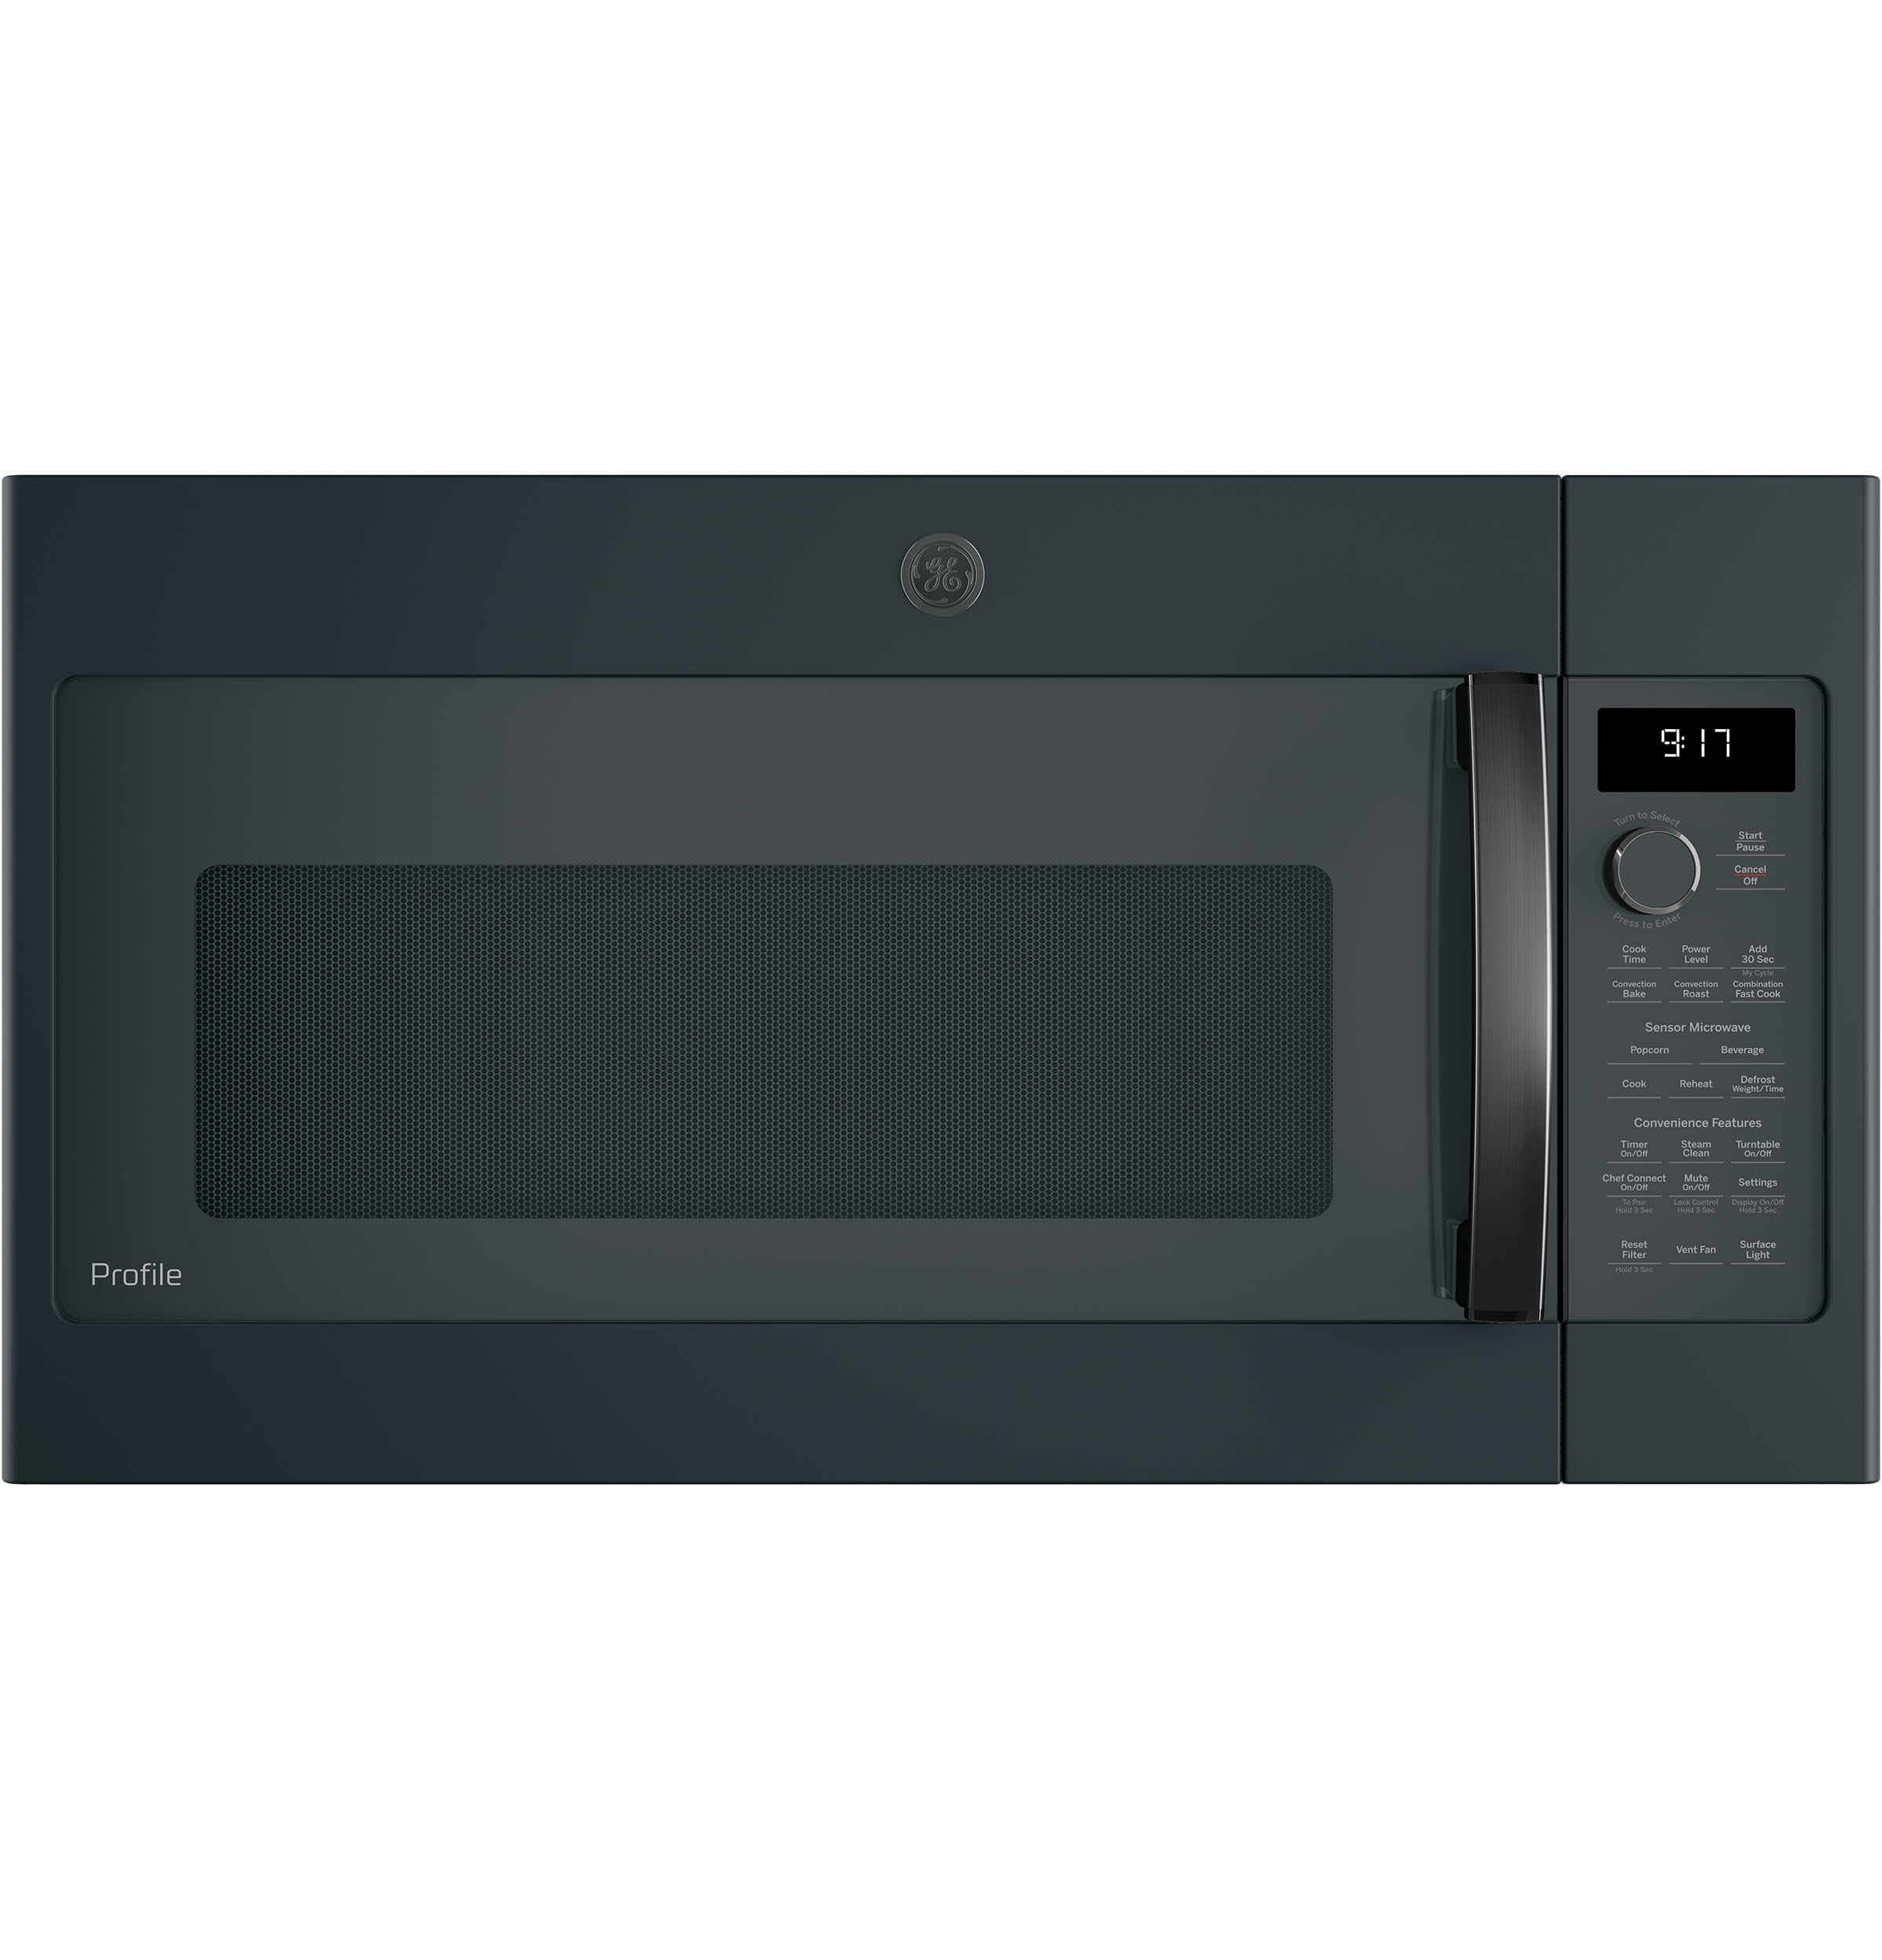 GE Profile GE Profile™ Series 1.7 Cu. Ft. Convection Over-the-Range Microwave Oven